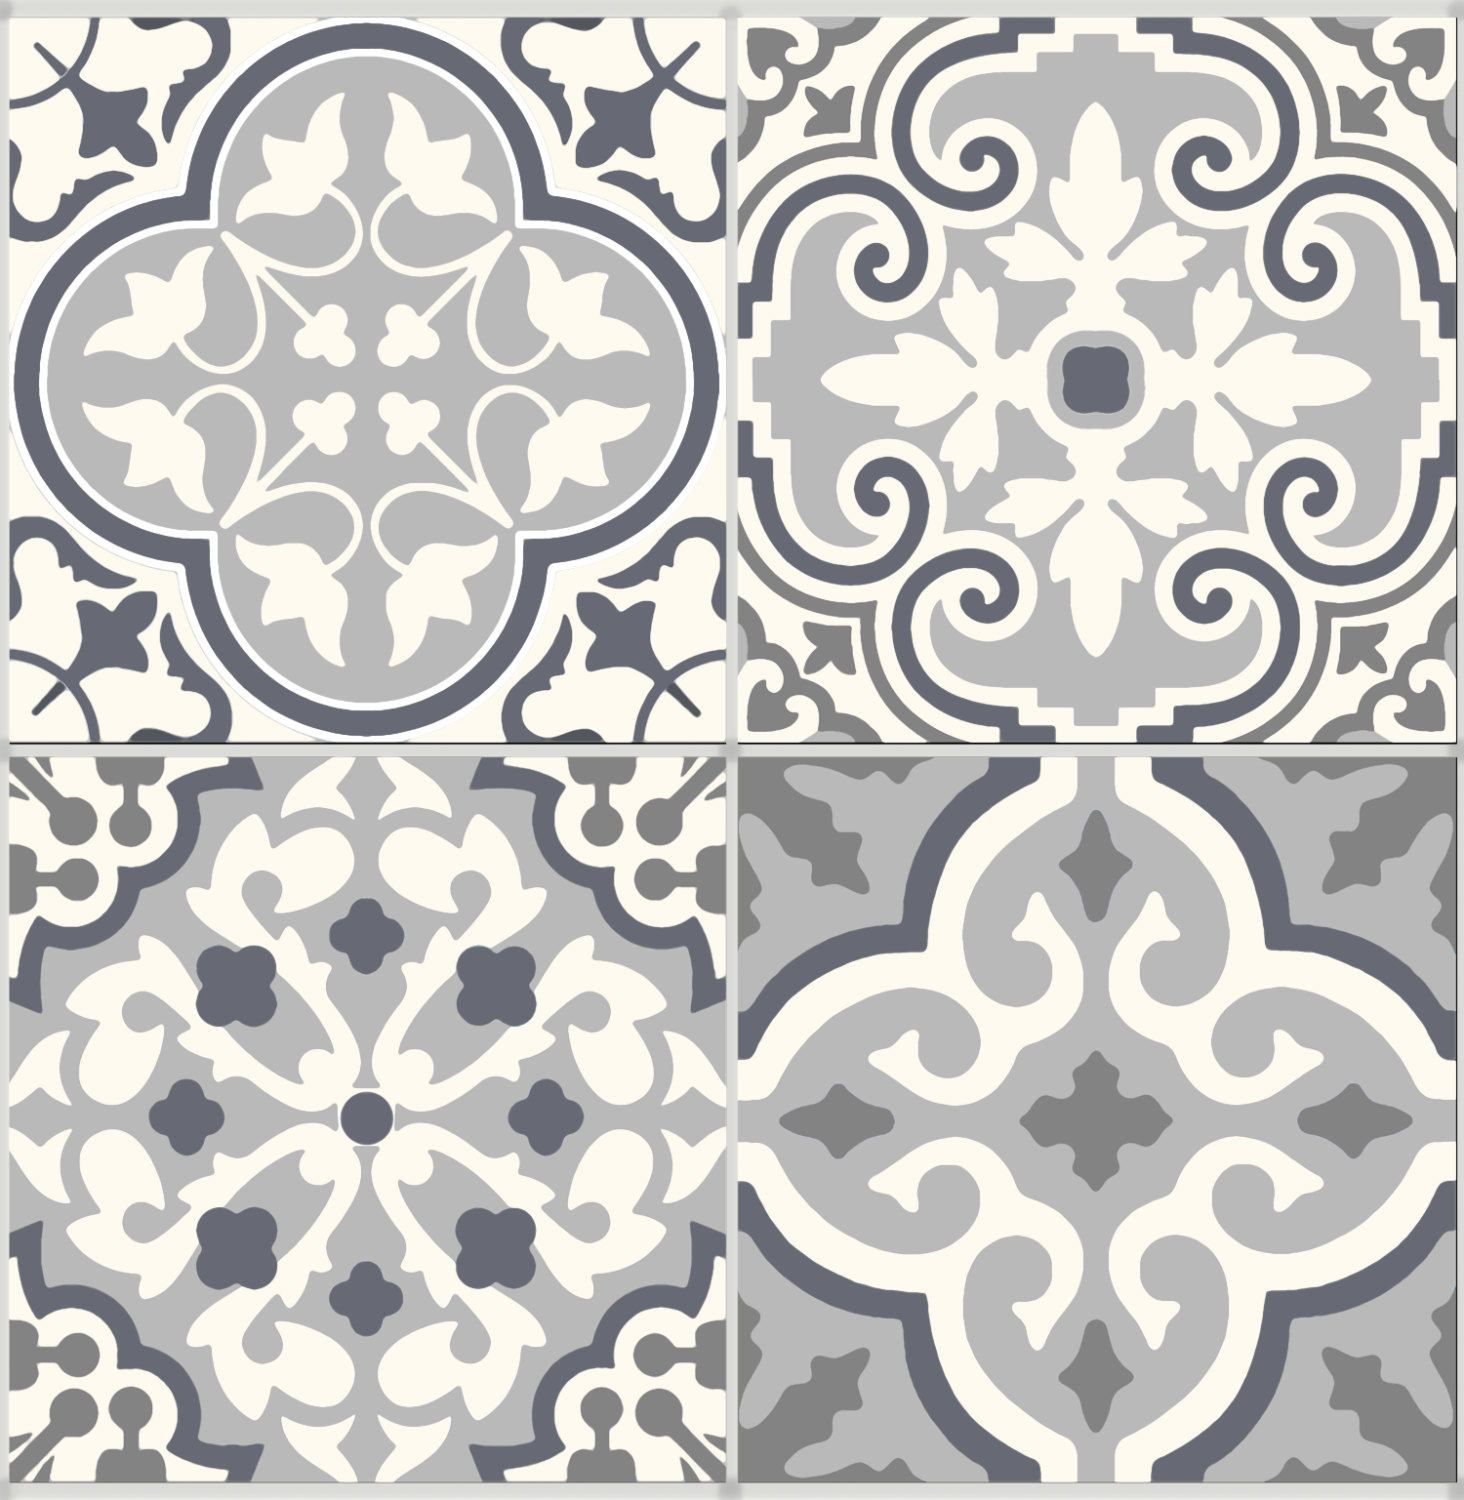 Tile Stickers Vinyl Decal Waterproof Removable For Kitchen Bath